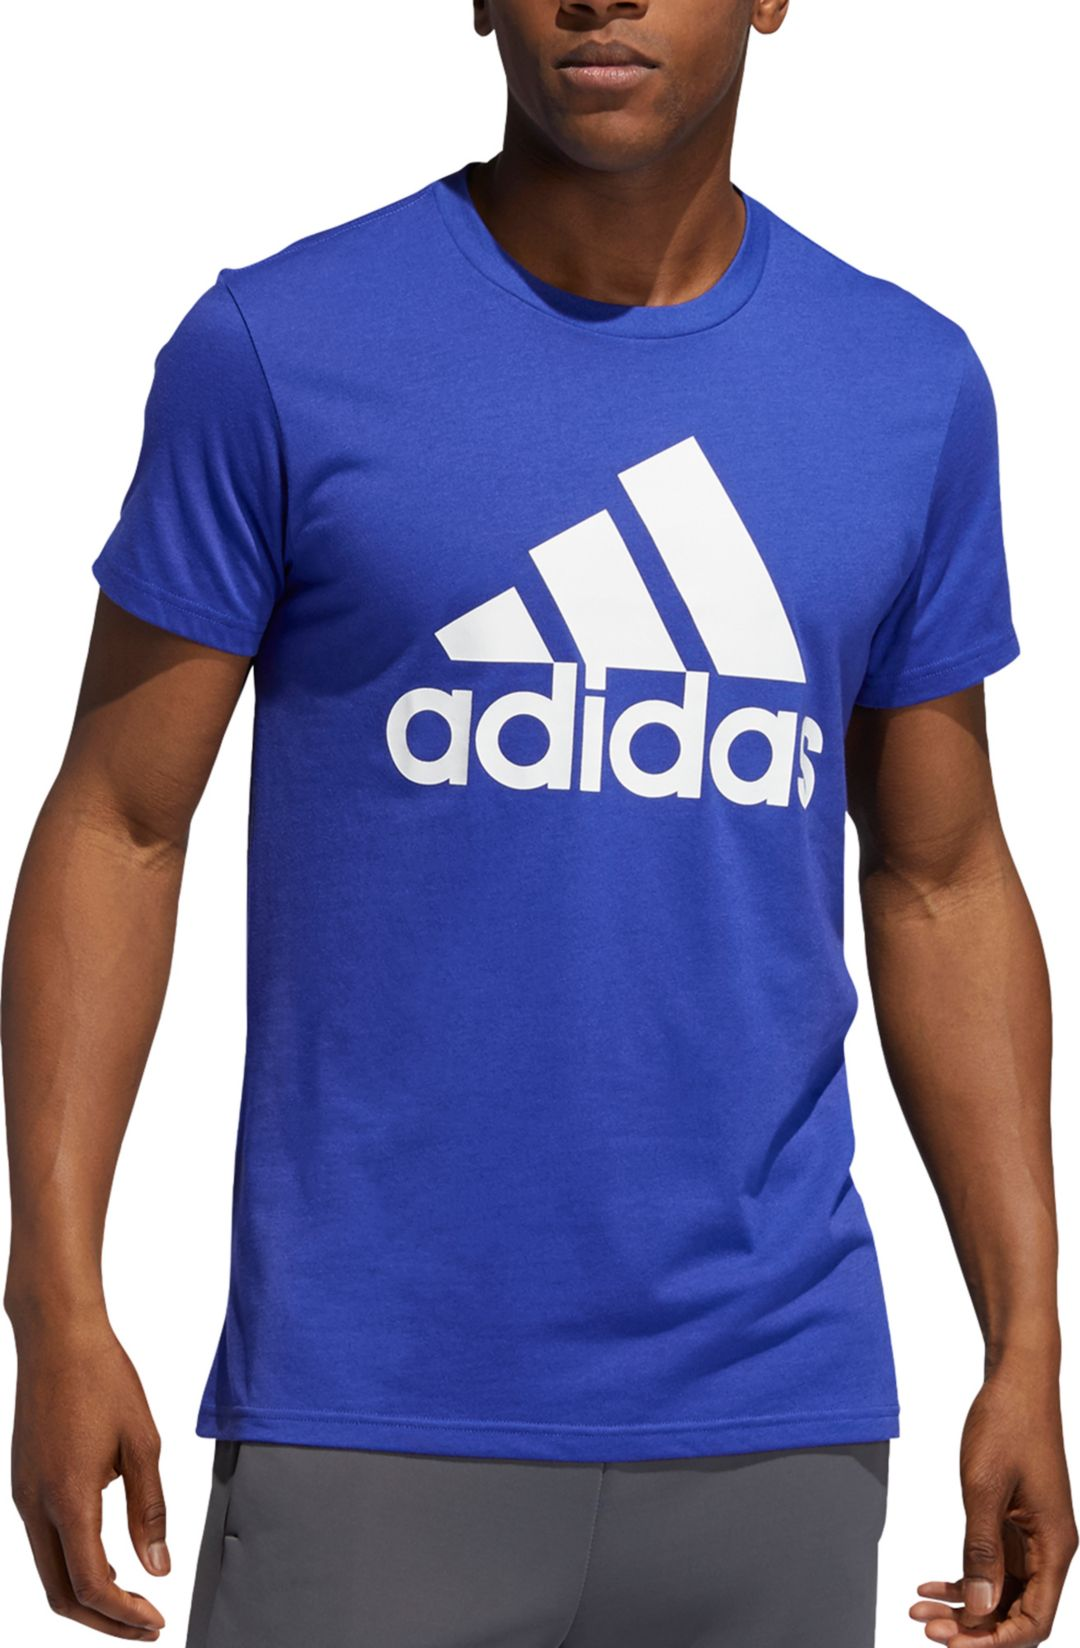 eac4e9fc0 adidas Men's Badge Of Sport Classic T-Shirt | DICK'S Sporting Goods